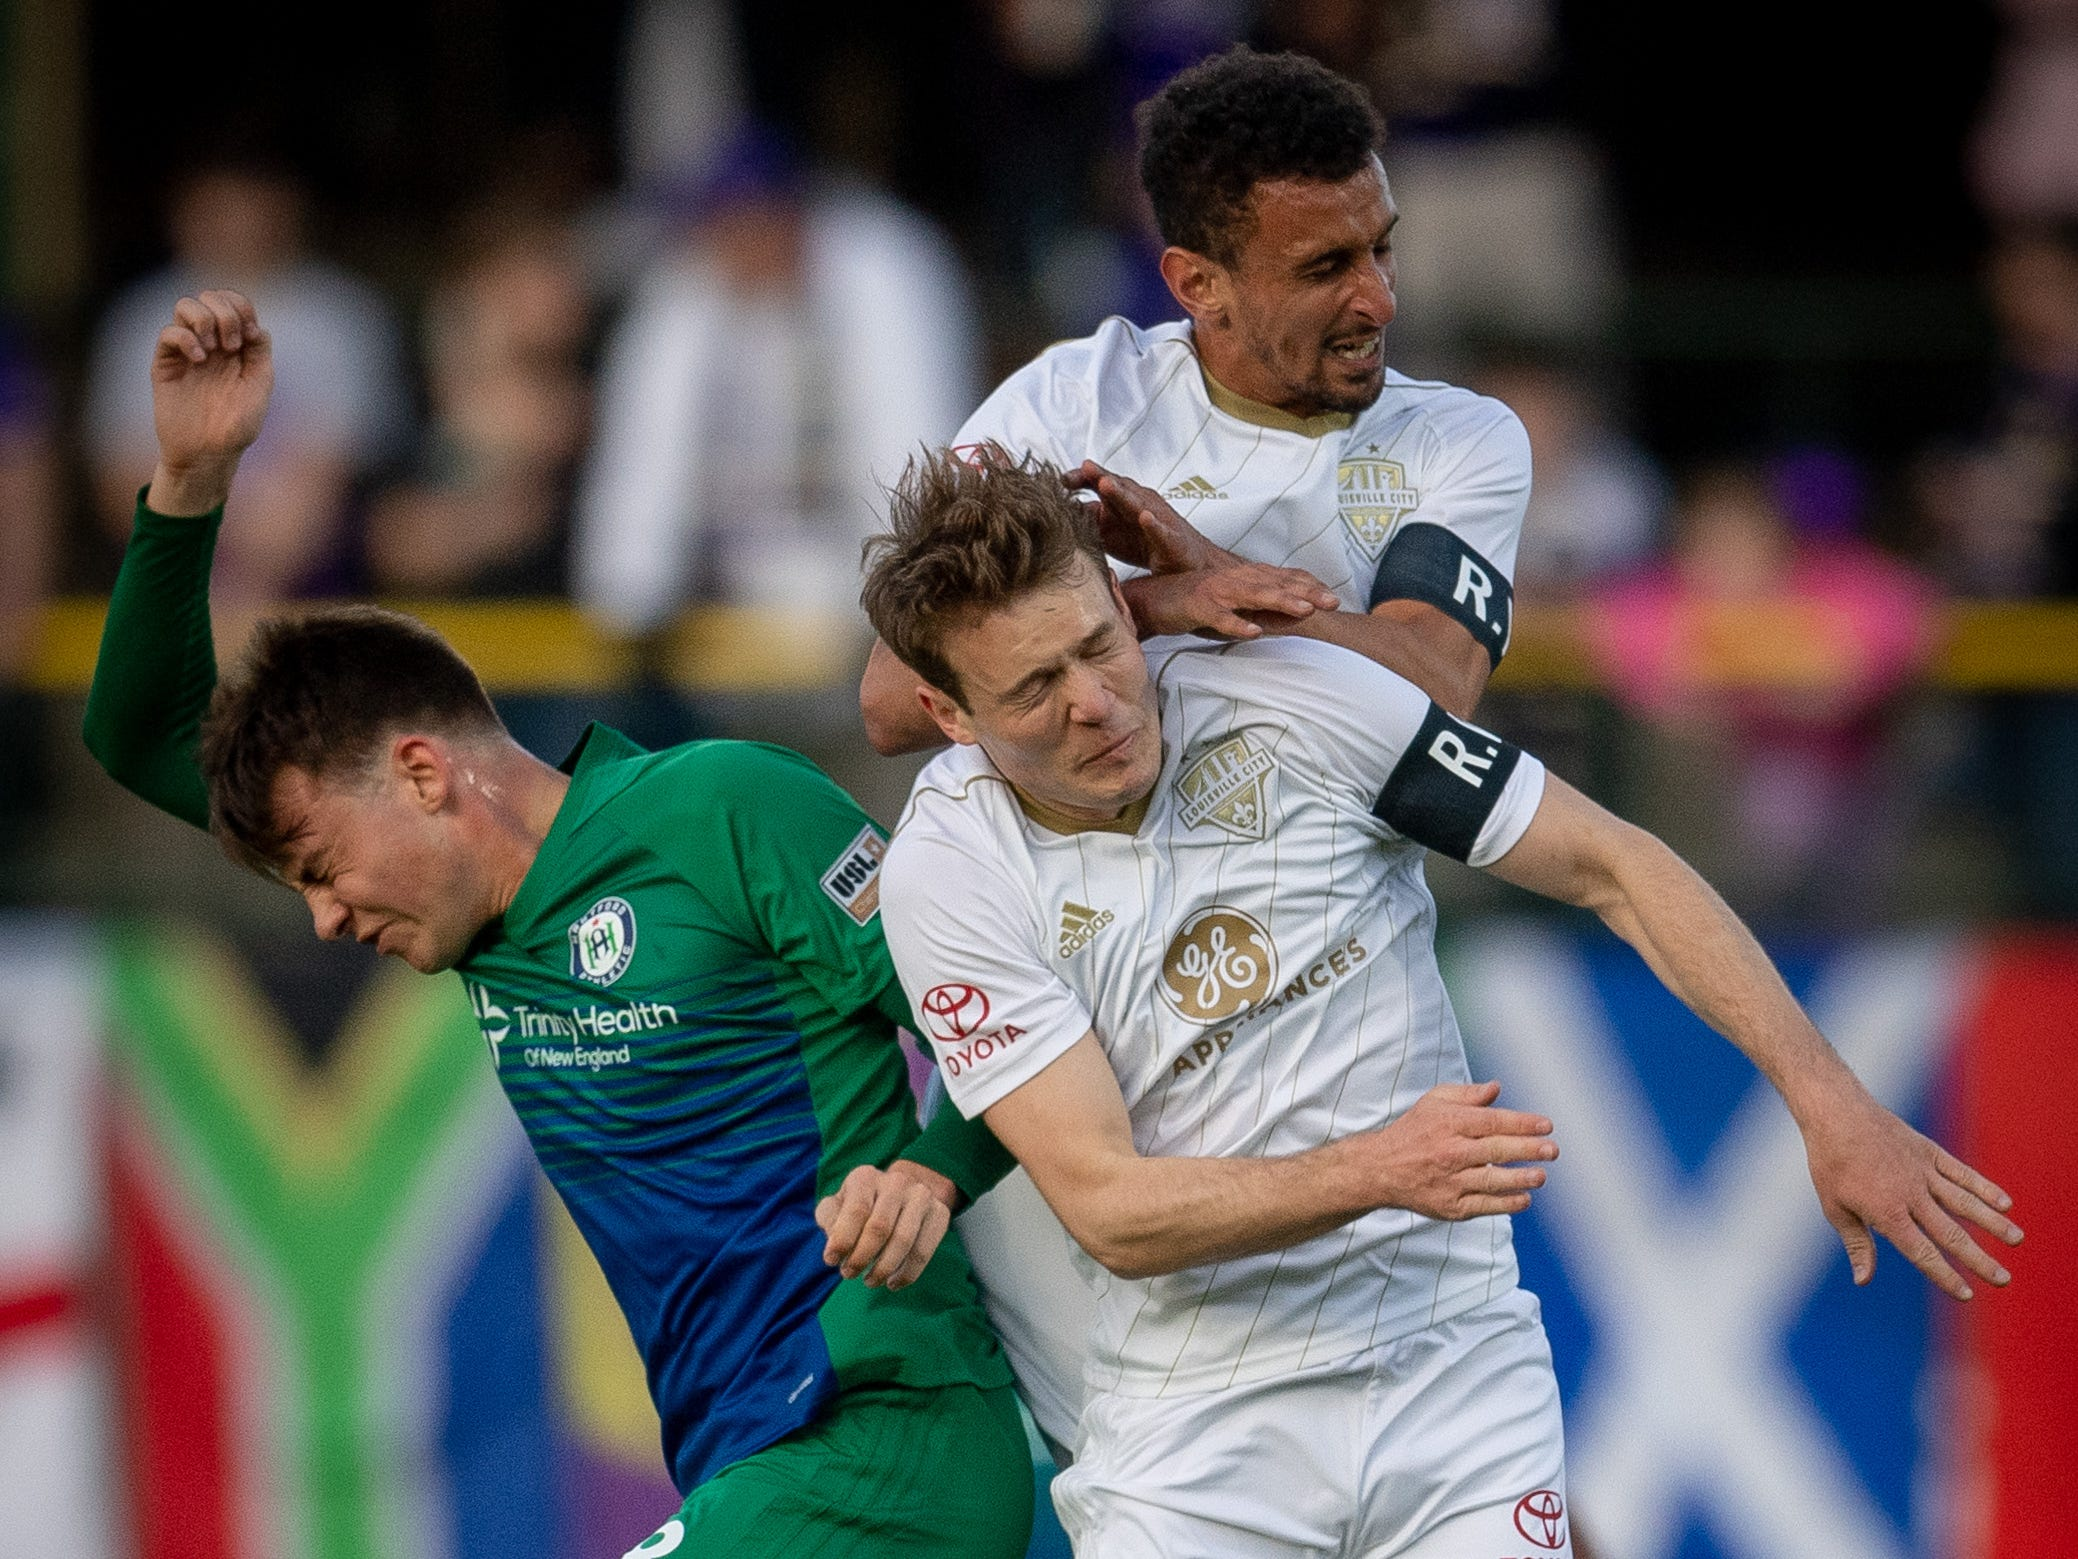 Louisville City FC defender Paco Craig (5) and defender Magnus Rasmussen (7) collide with Hartford Athletic Mads Jorgensen during the season opening match in Louisville, Ky., Saturday, March 23, 2019.